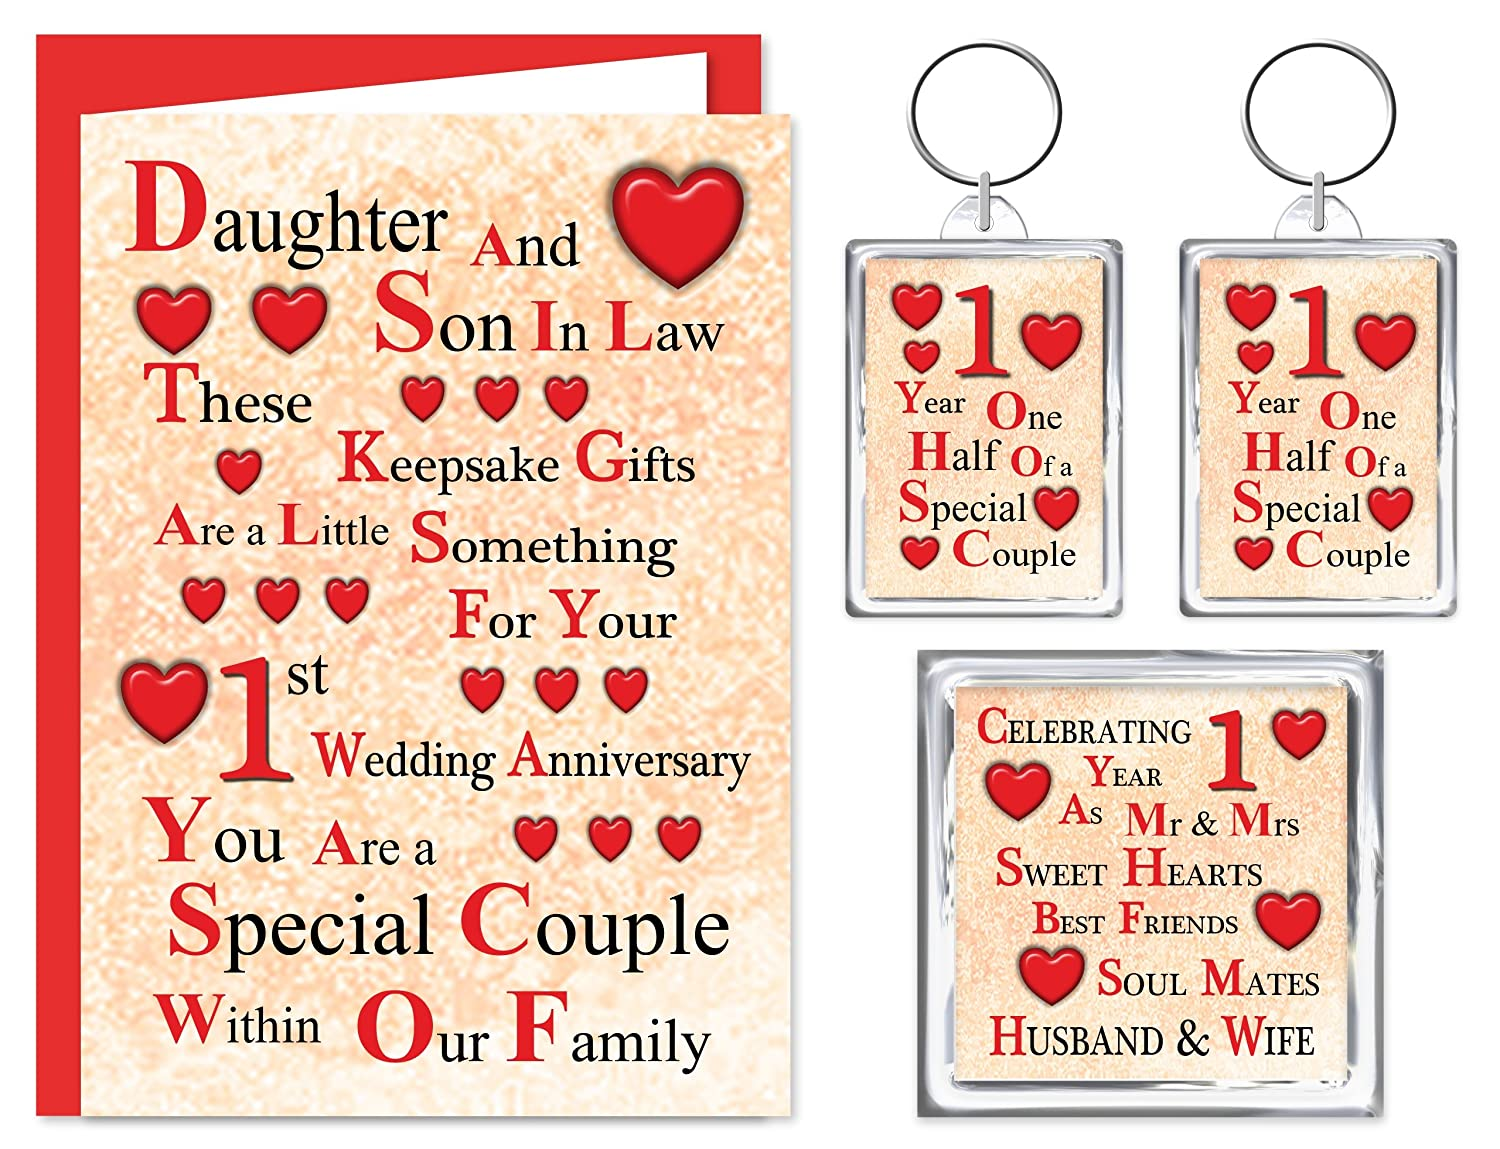 Daughter son in law 1st wedding anniversary gift set card 2 daughter son in law 1st wedding anniversary gift set card 2 keyrings fridge magnet a little something for a special couple on your paper negle Gallery